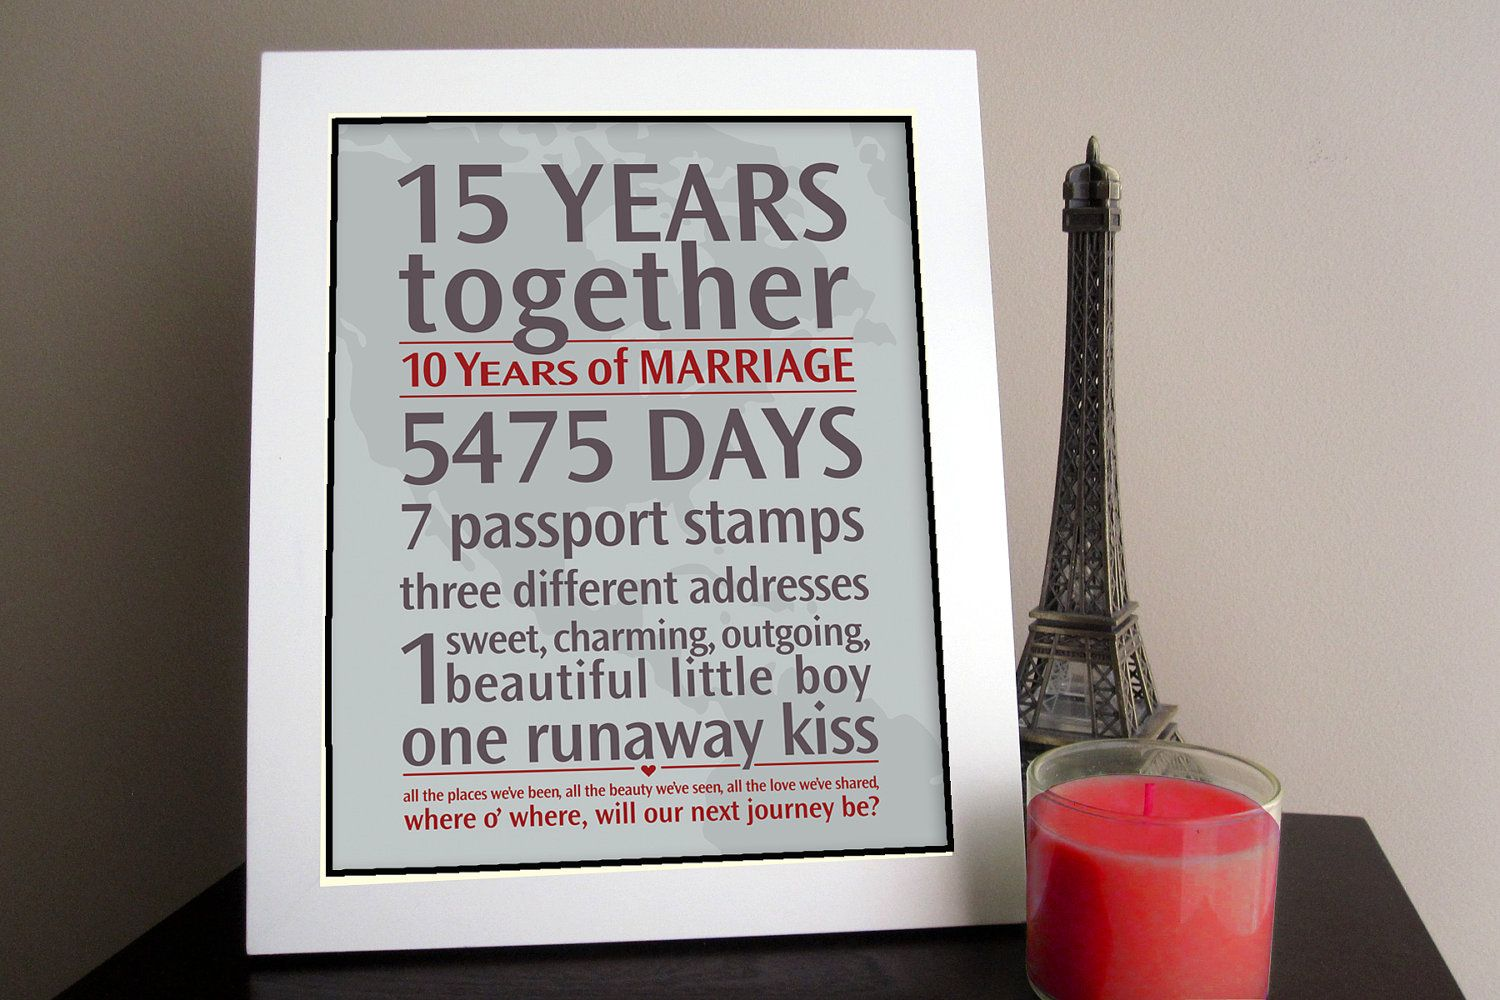 Diy personalized wedding anniversary gift your loves journey by diy personalized wedding anniversary gift your loves journey by the numbers printable solutioingenieria Choice Image